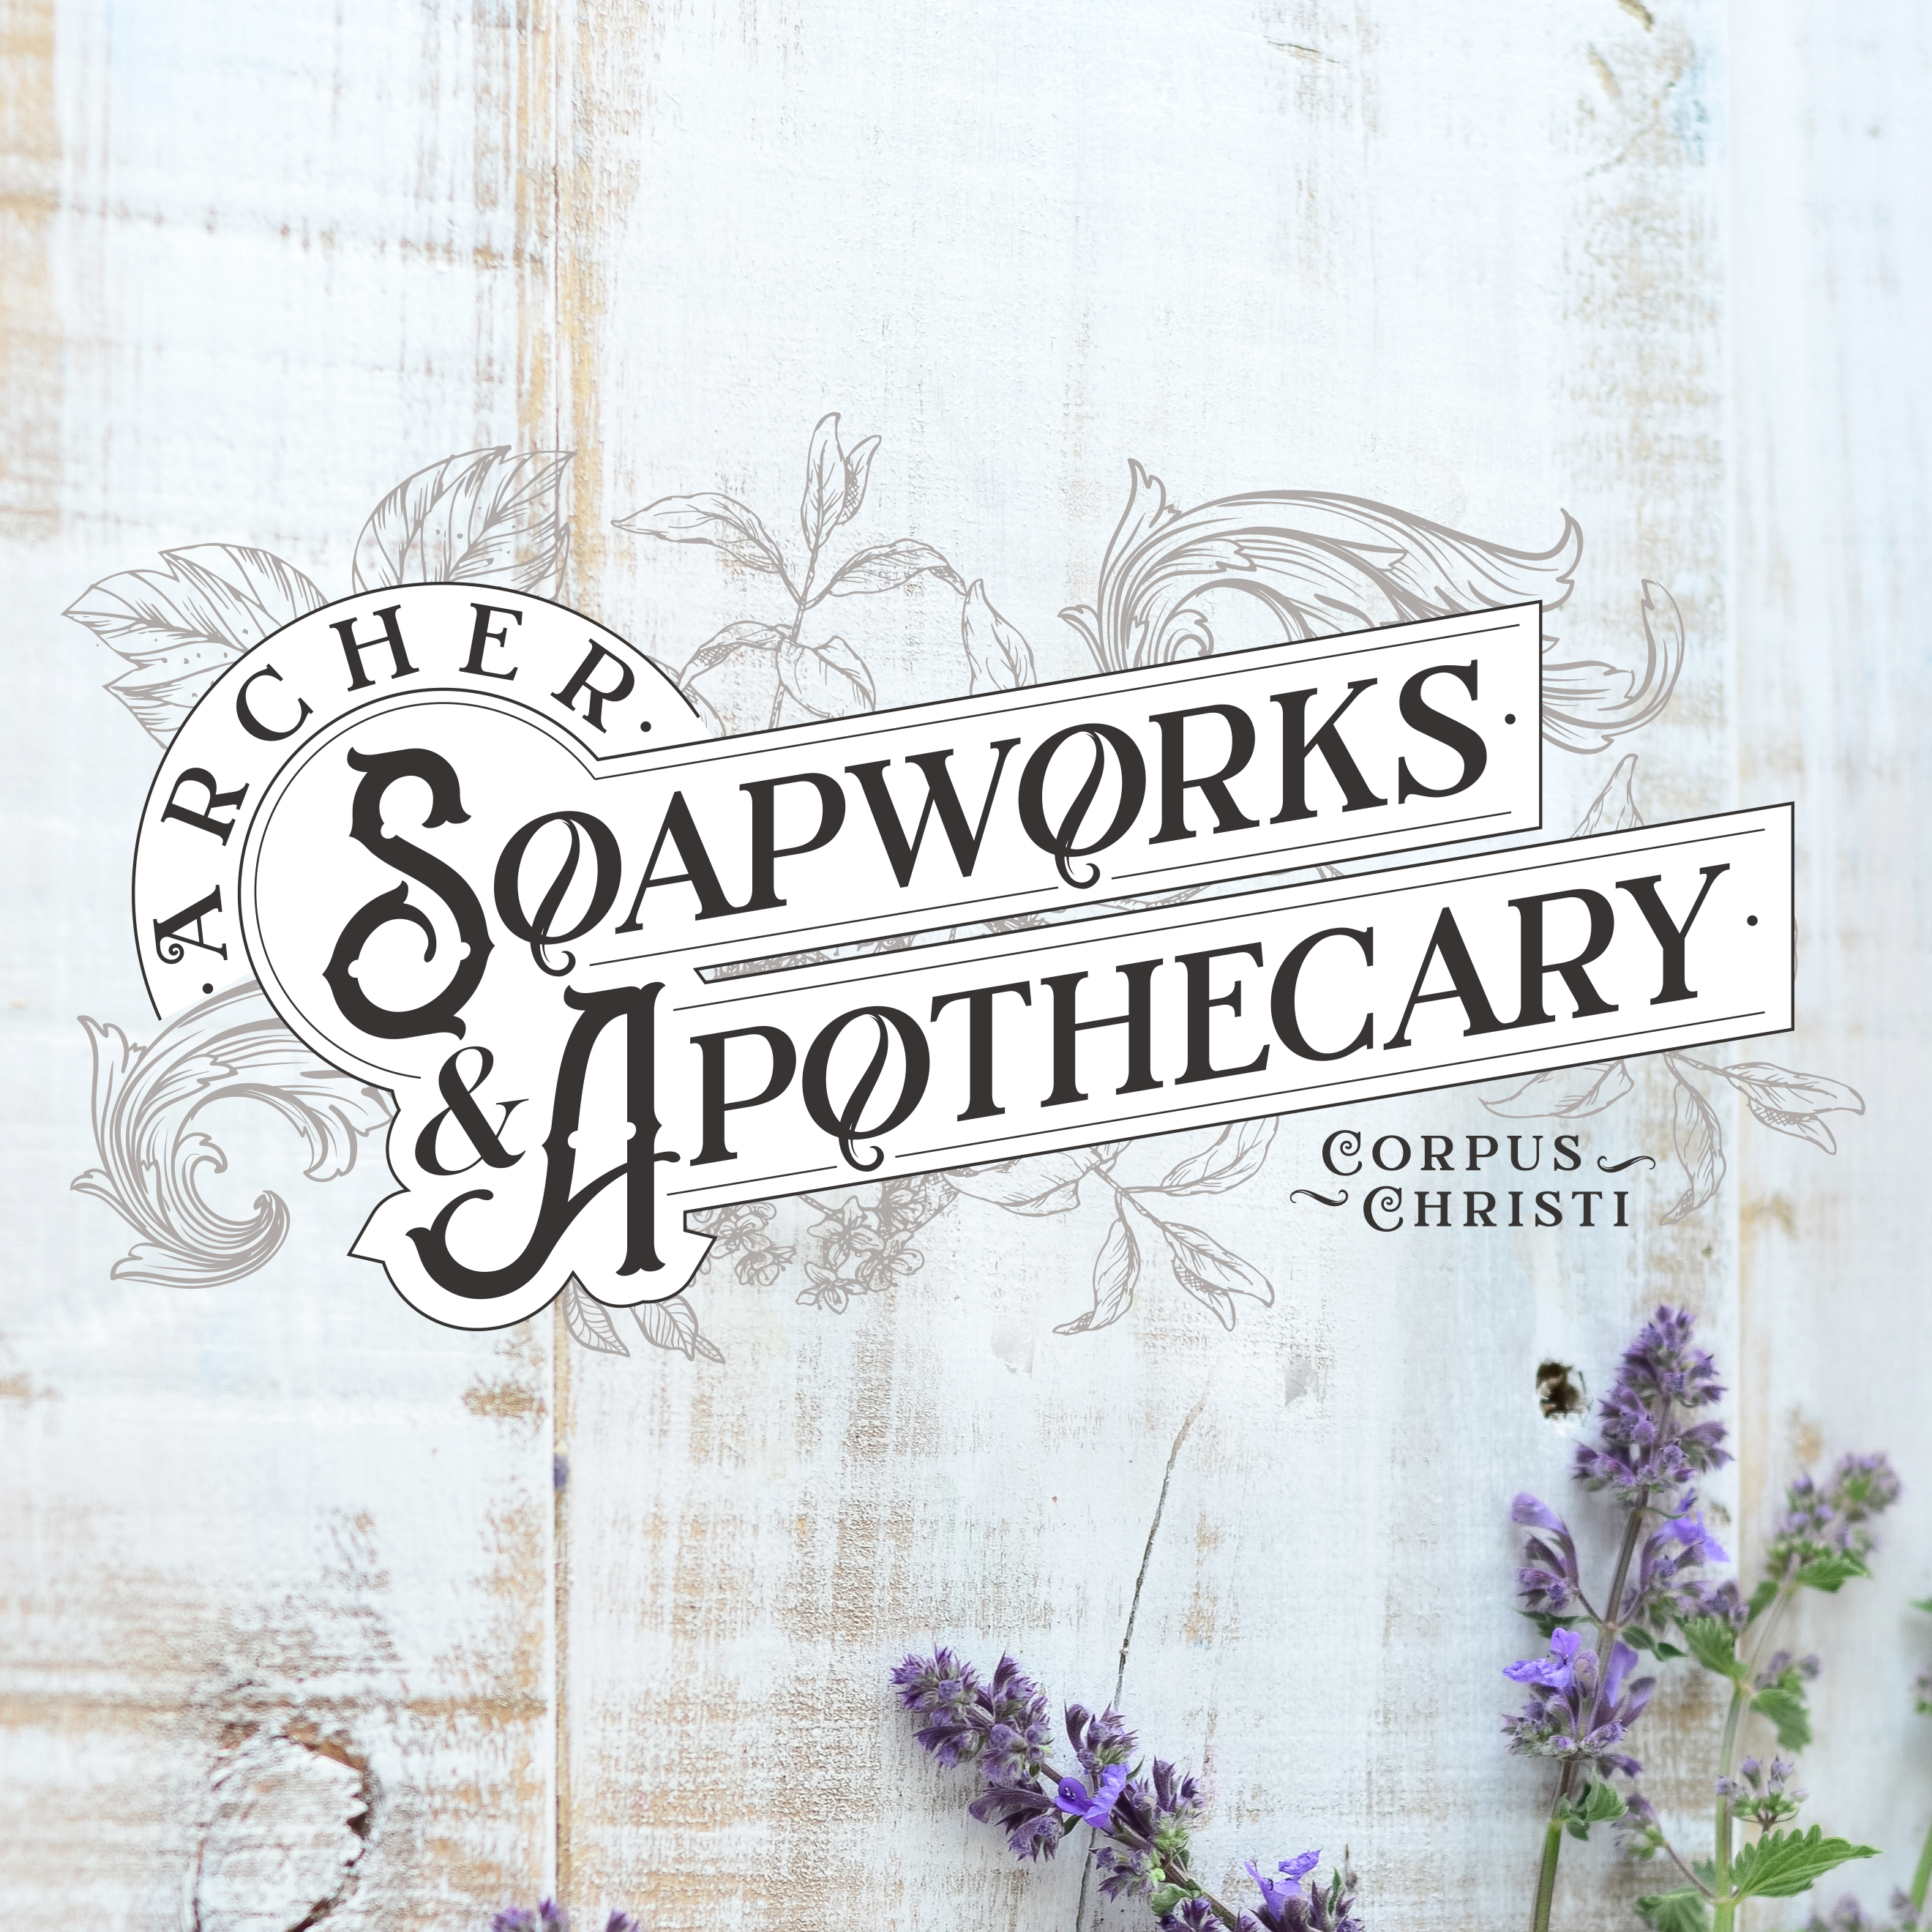 Archer Soapworks & Apothecary Corpus Chr